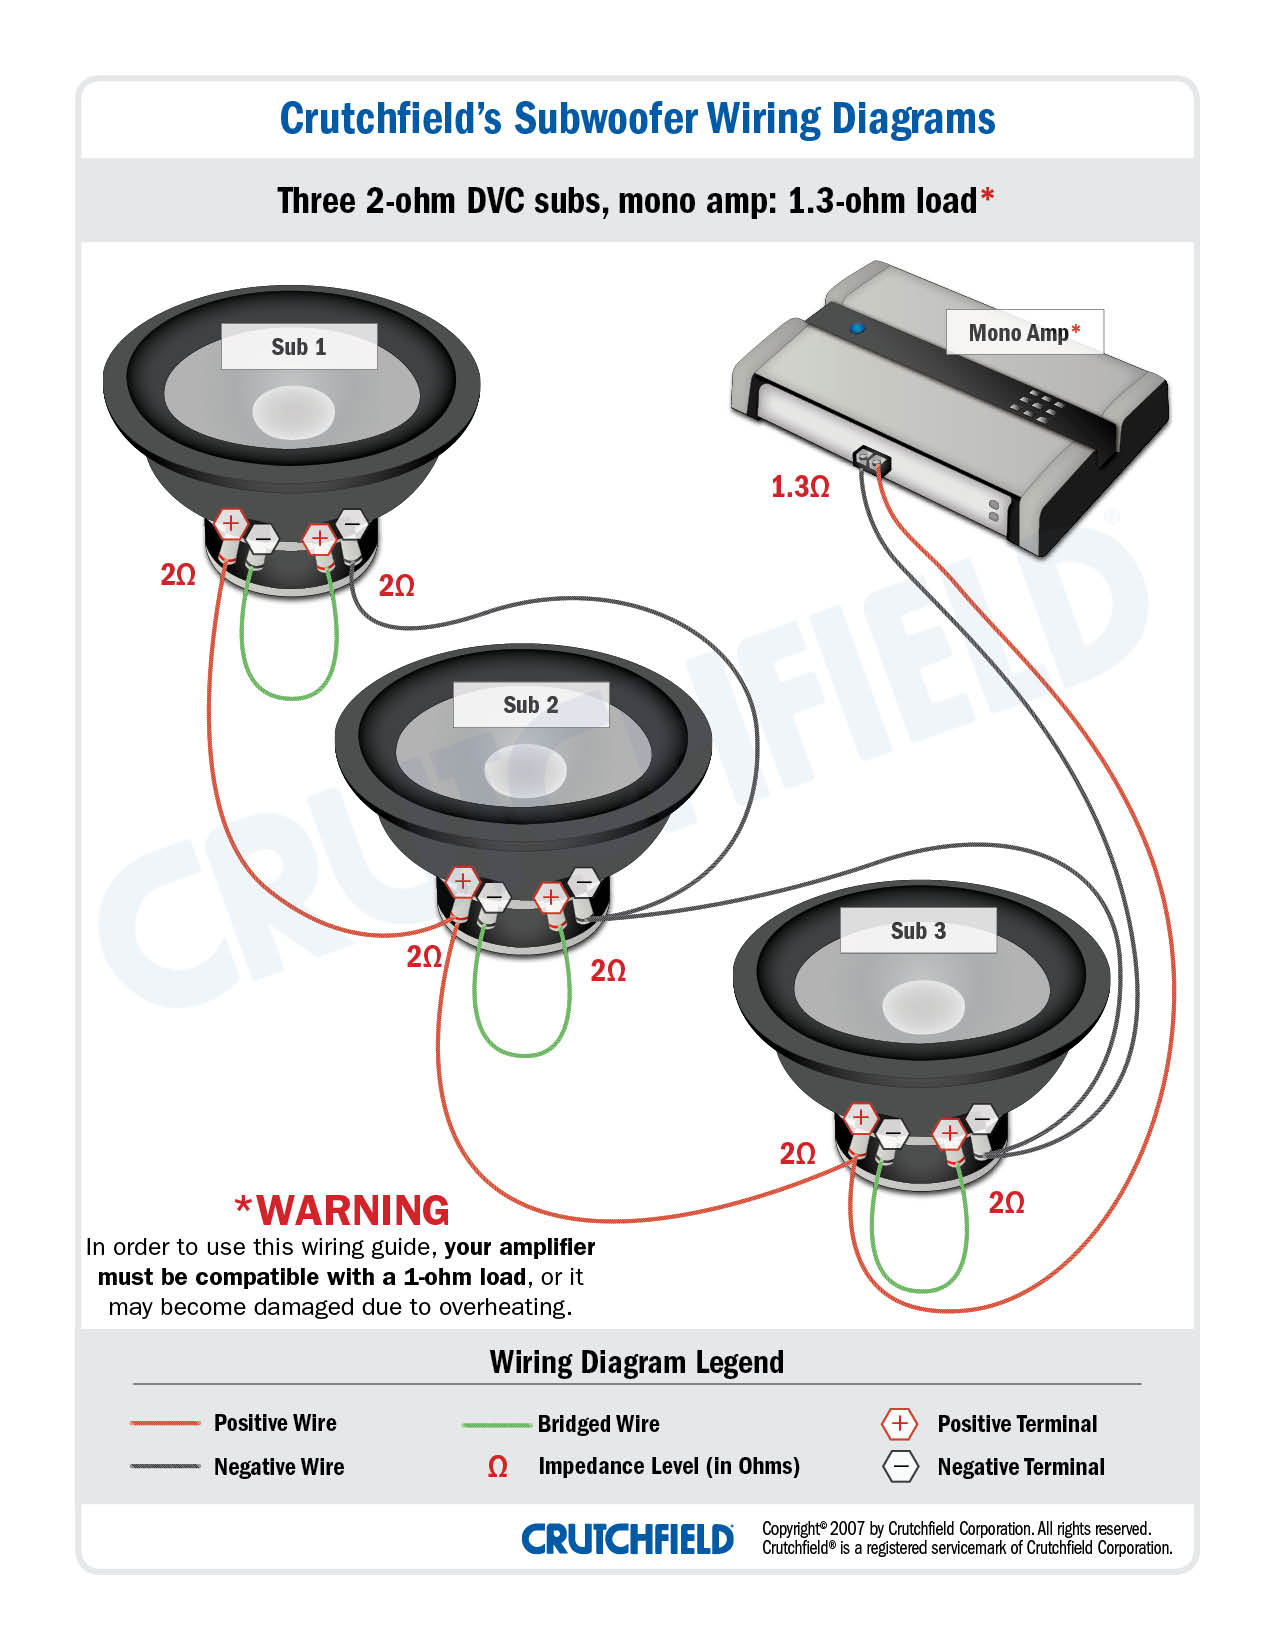 Subwoofer Amp Wiring - Wiring Diagram Schematic Name on 2 ohm to 1 ohm, 1 ohm wiring-diagram, 2 ohm amp, 4 ohm wiring-diagram, 2 ohm and a 4 ohm wiring digram, 2 ohm speaker wiring configurations, 2 ohm speaker wiring diagrams, 2 ohm dvc wiring, 2 ohm subwoofer,